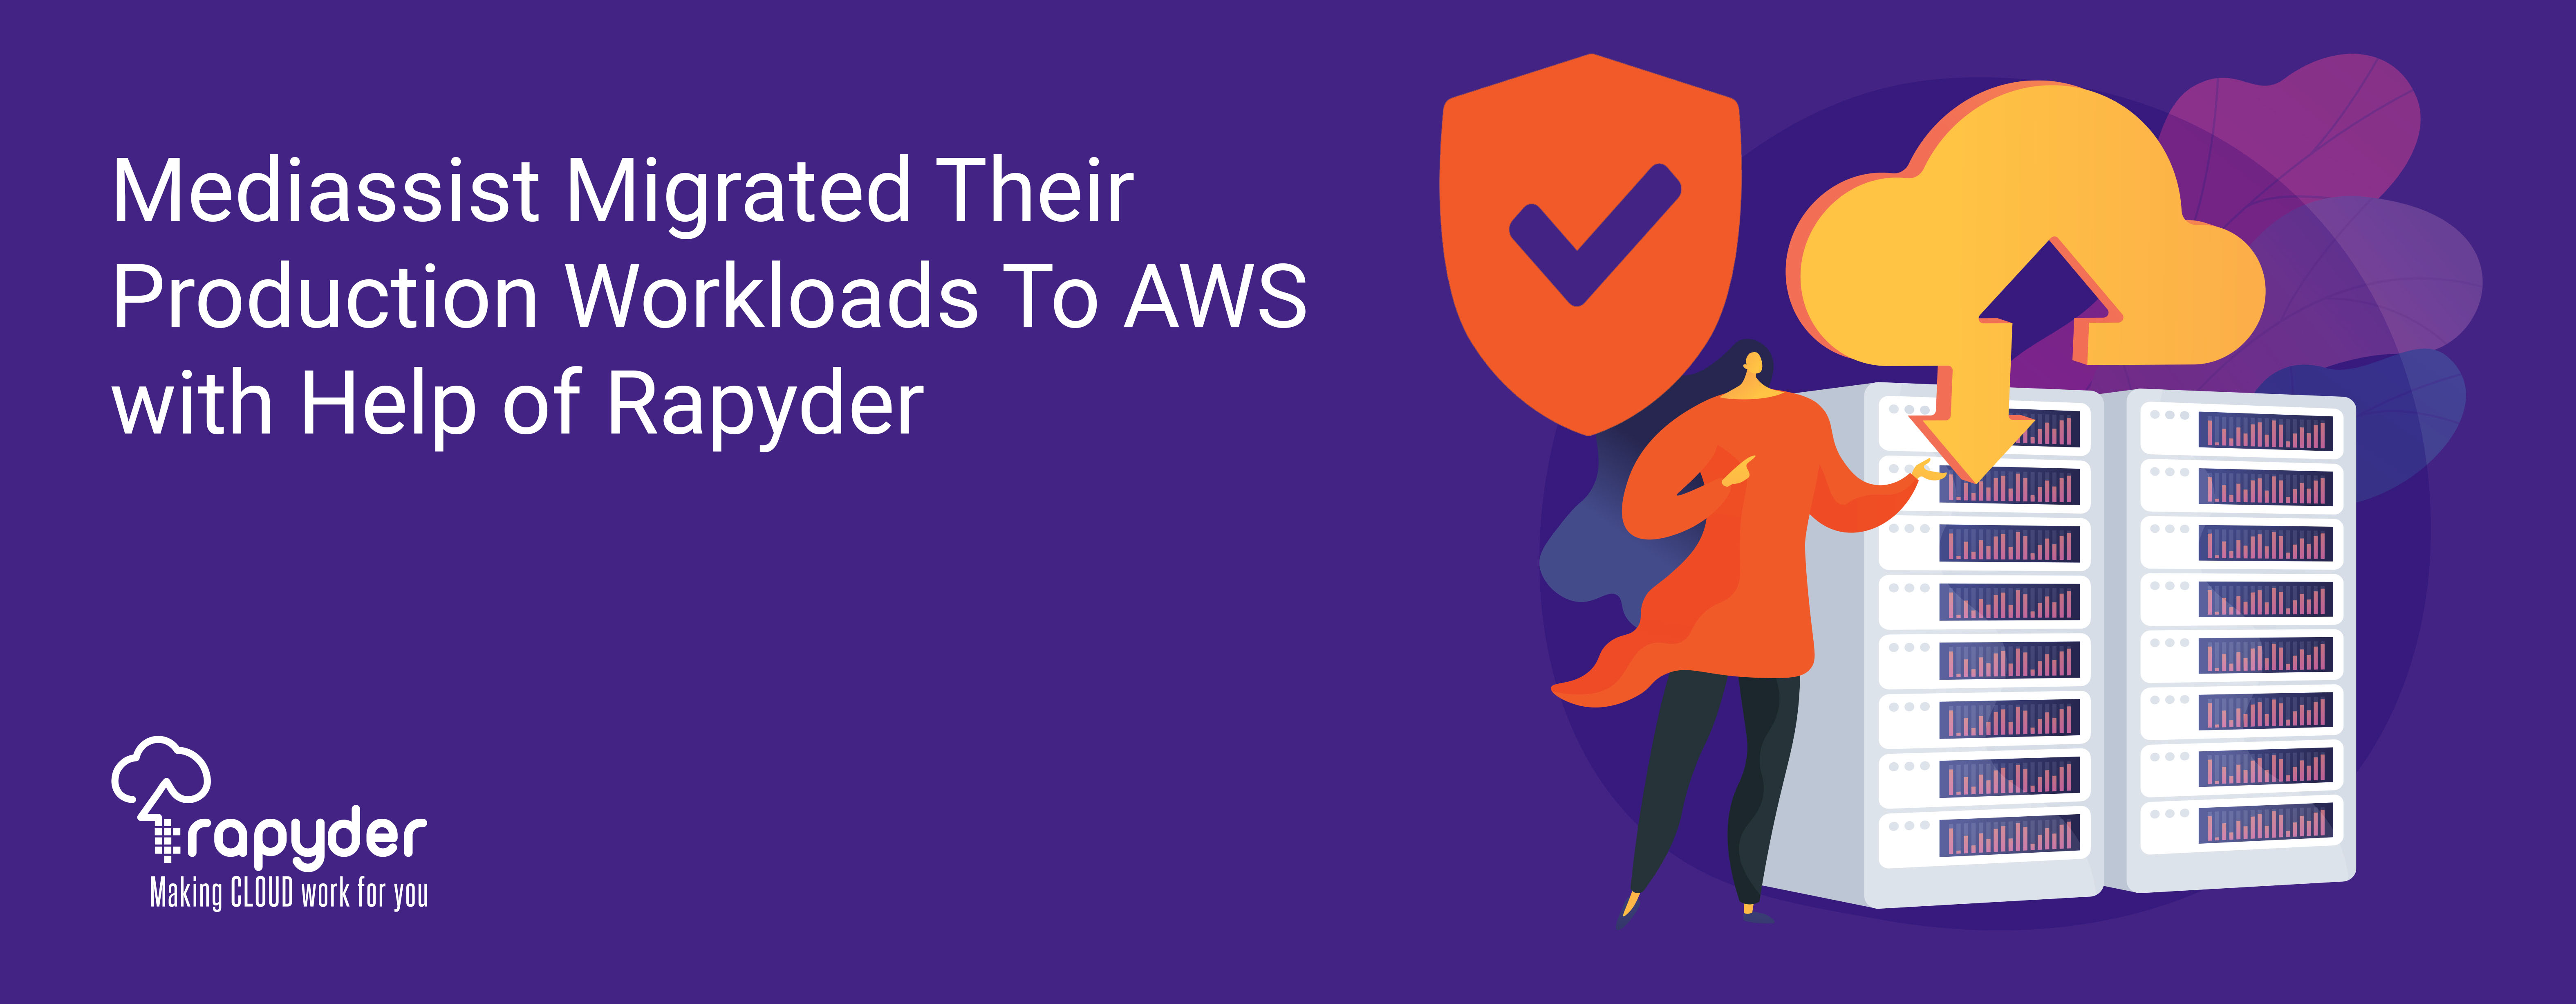 Mediassist Migrated Their Production Workloads To AWS with Help of Rapyder